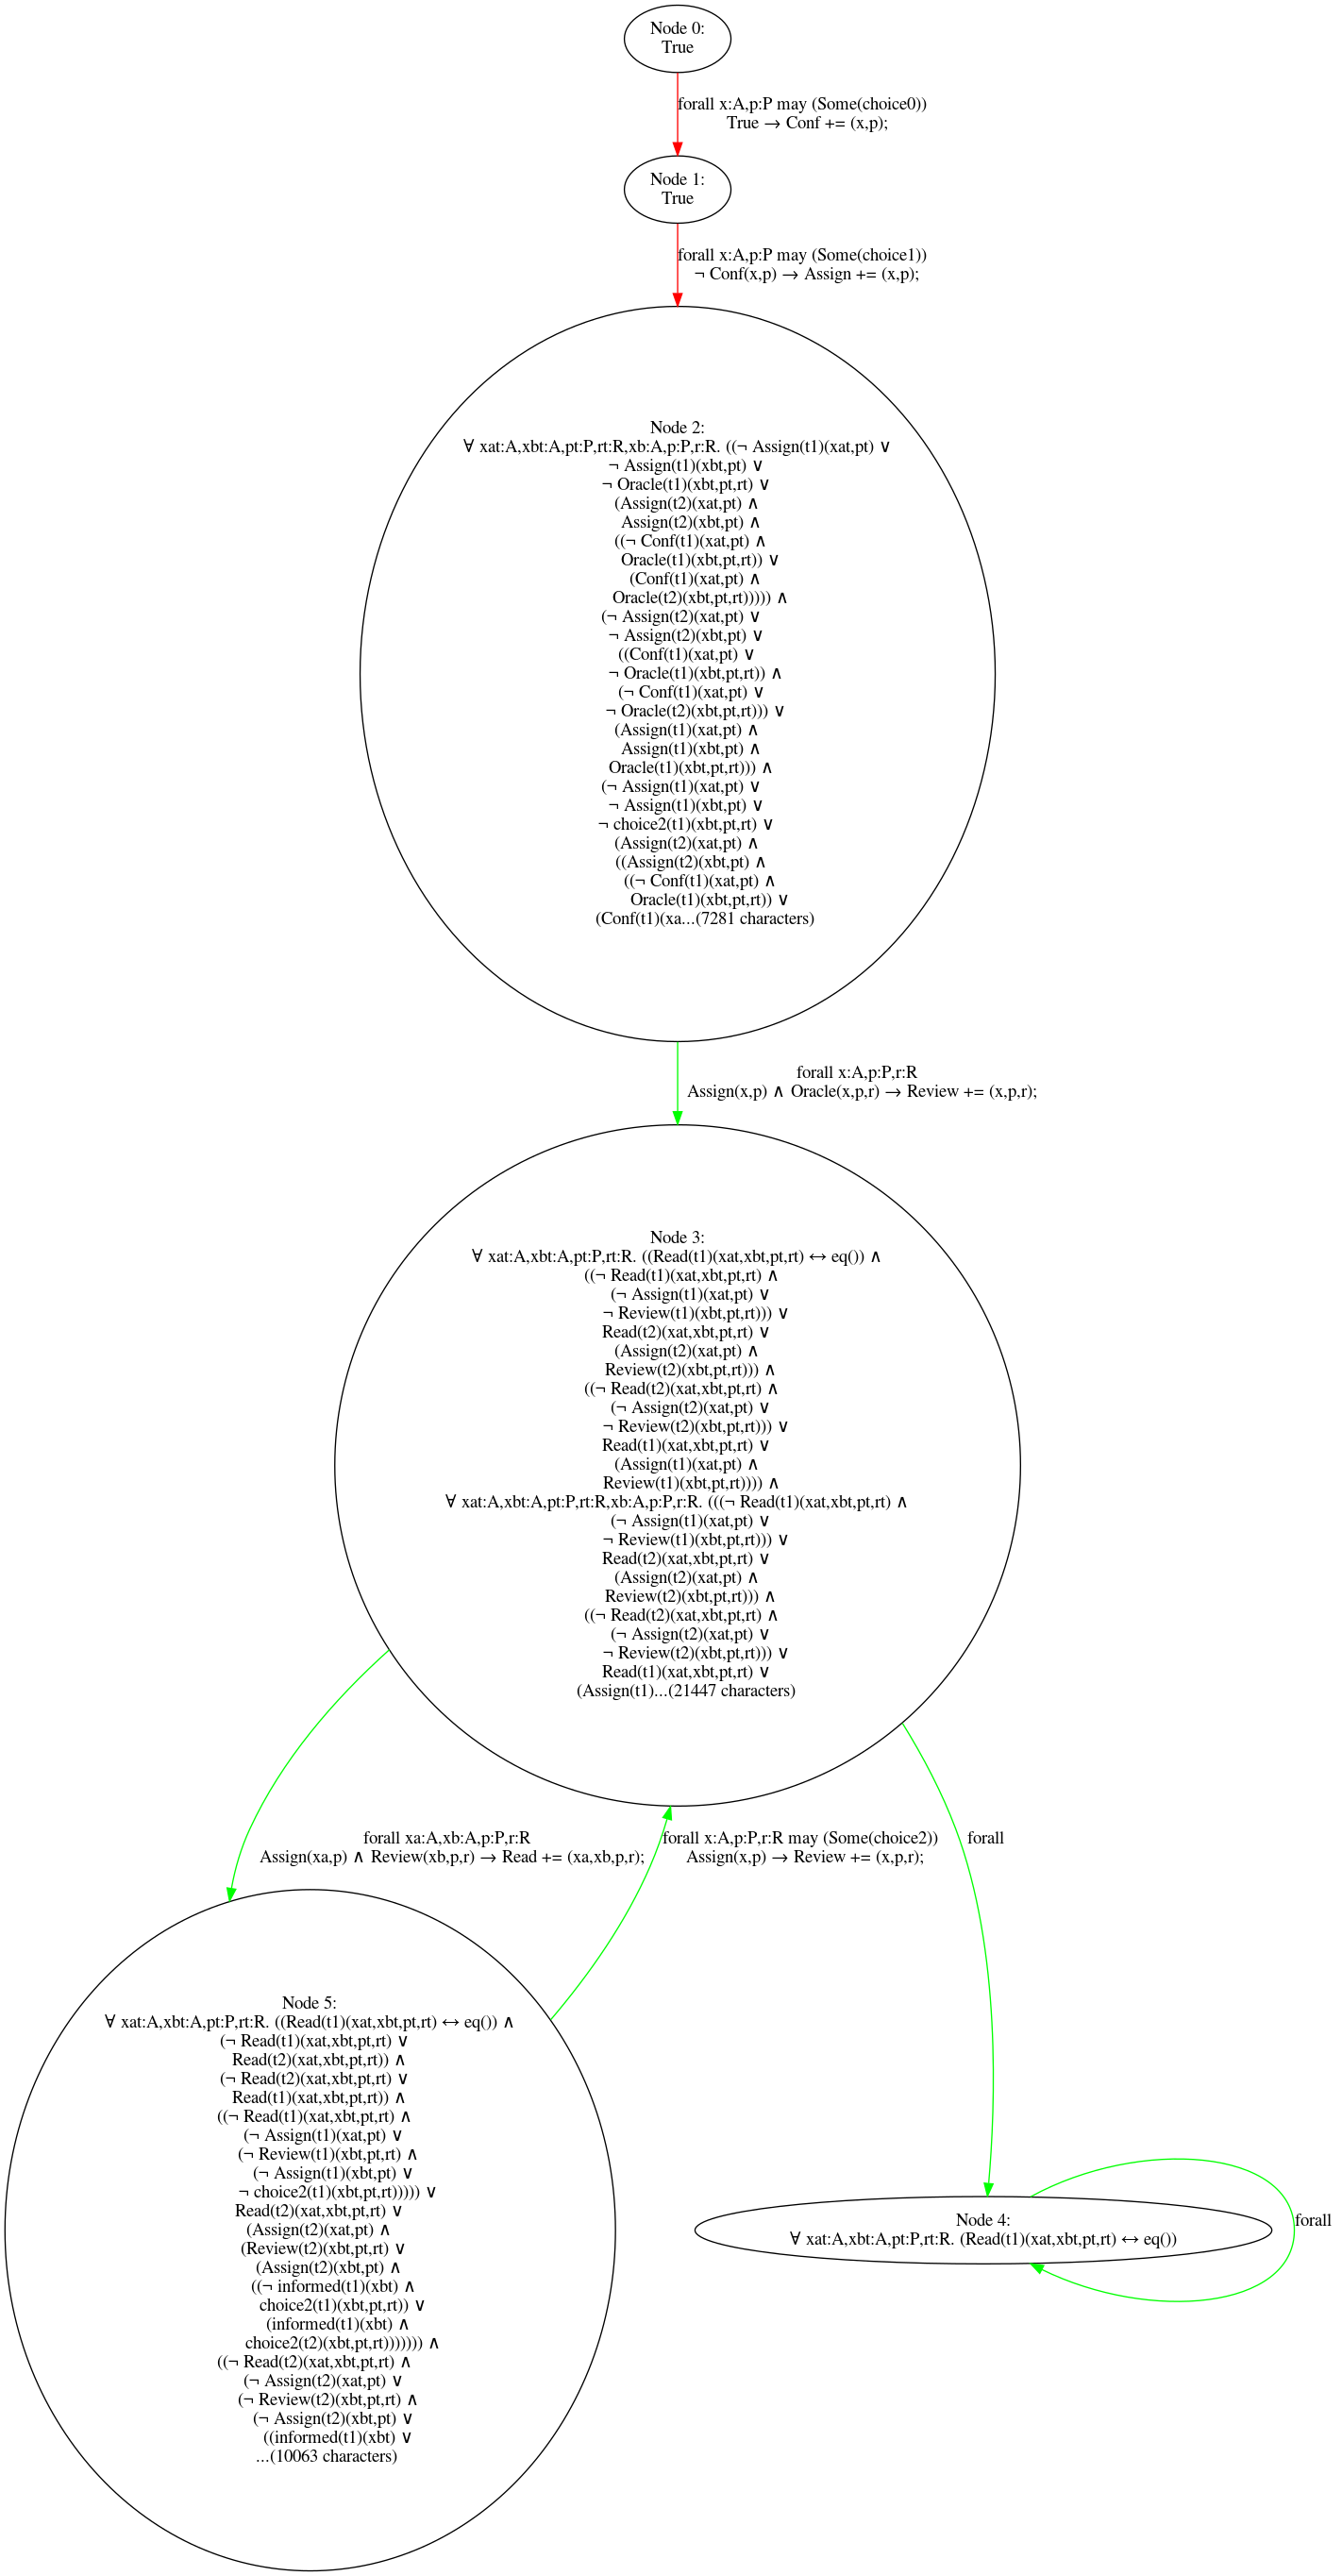 results/nonomitting/conference/conference_causal_alleq_12.png